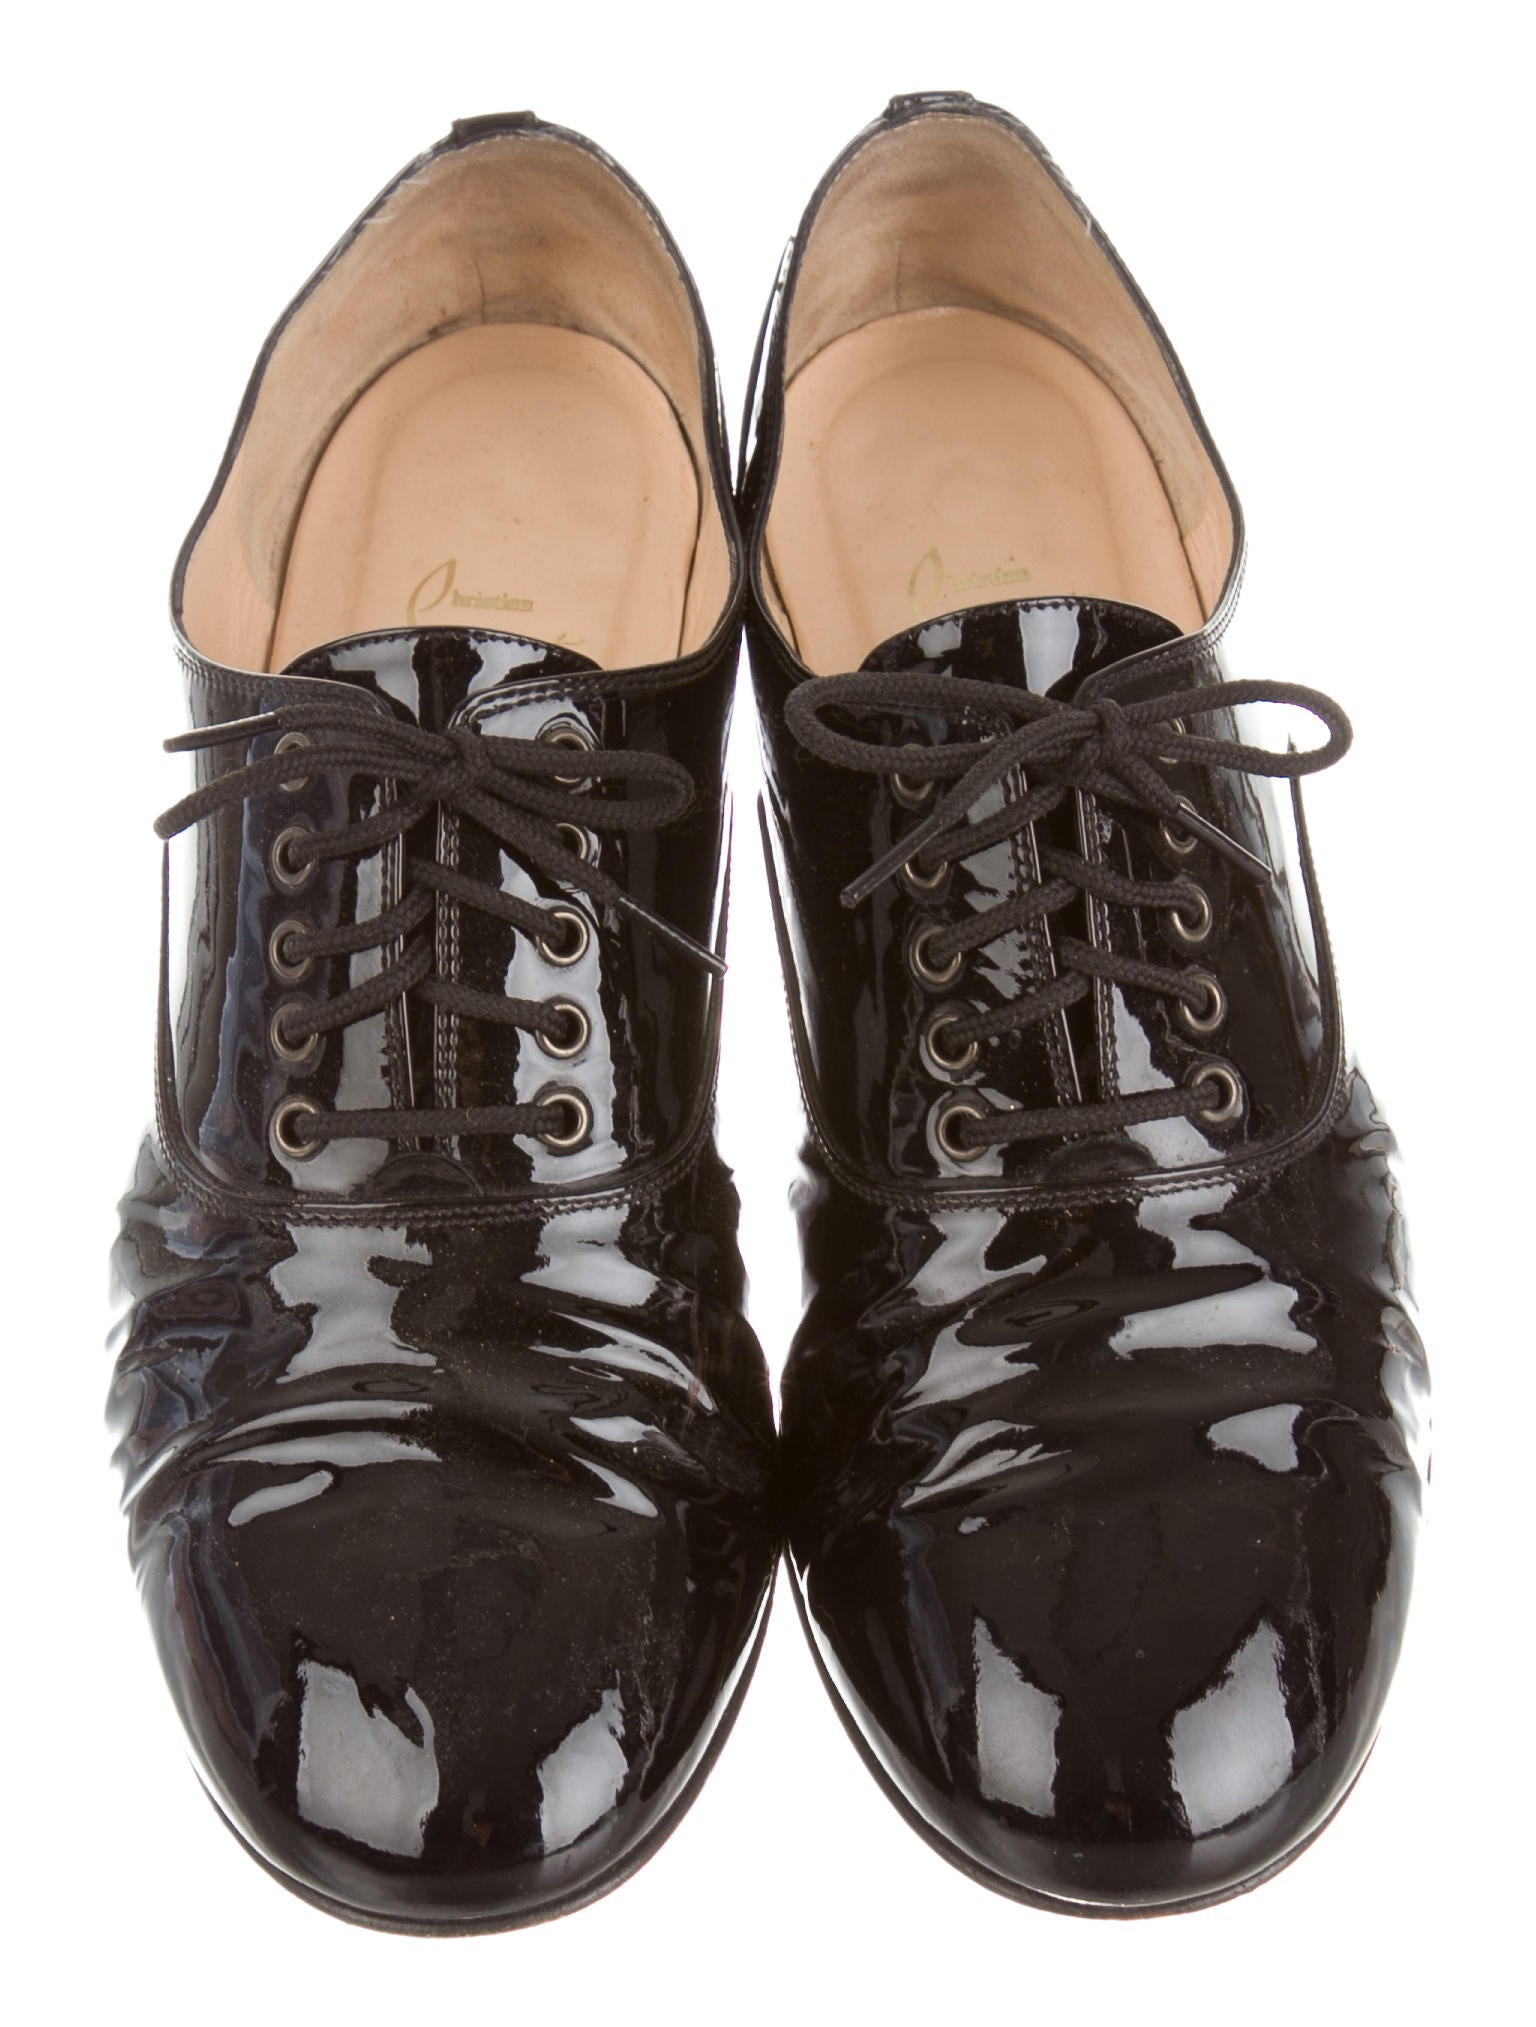 replica slippers - christian louboutin patent leather round-toe oxfords, louis ...